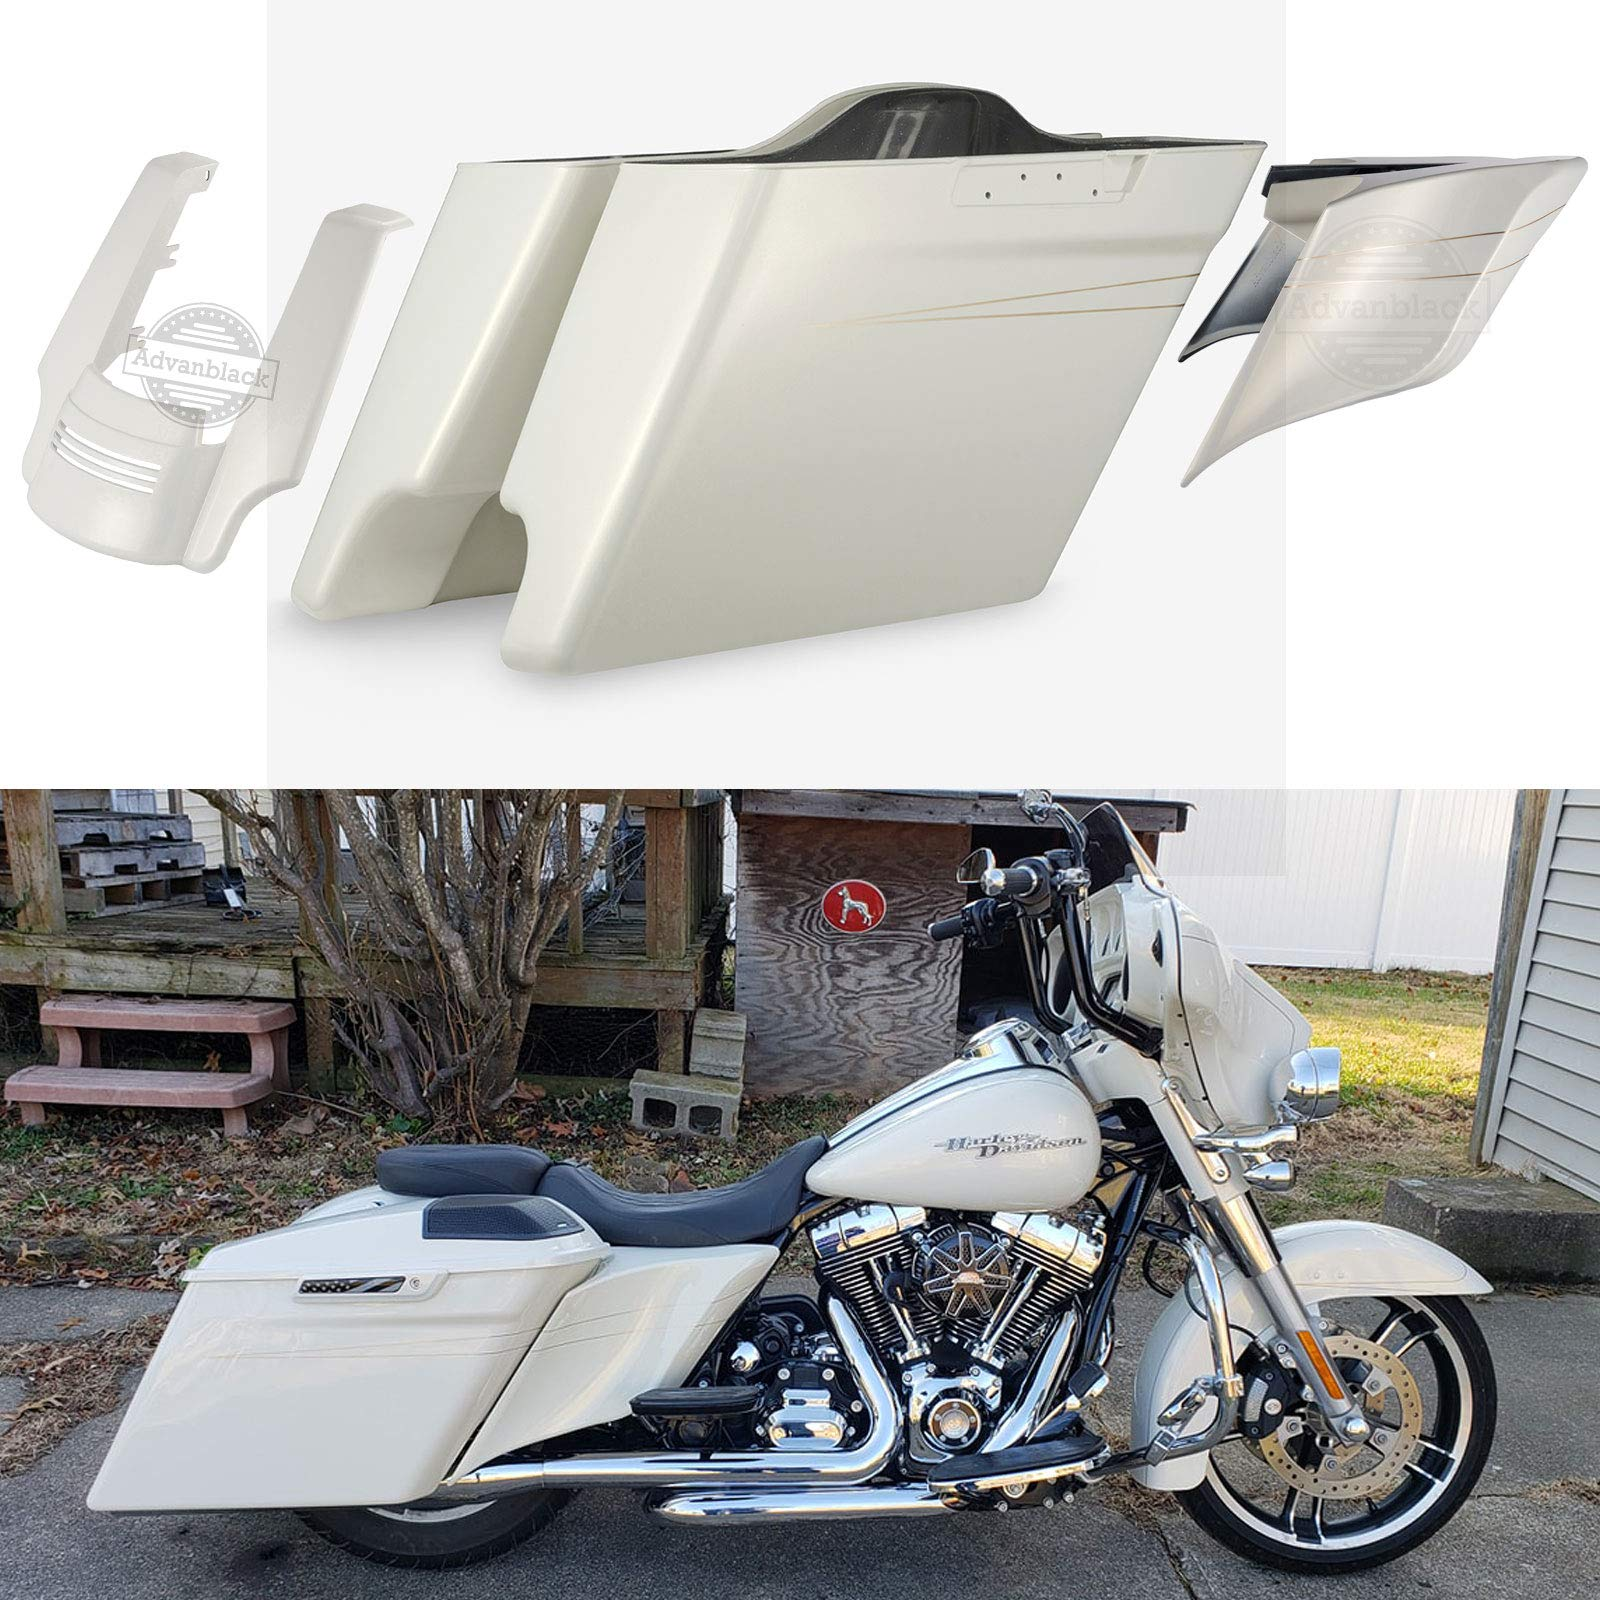 Advanblack Morocco Gold Pearl 4 1/2 inch Extended Saddlebags Stretched Side Covers Rear Fender Extension Fit for 2014 2015 2016 2017 2018 2019 2020 Harley Touring Road Glide Special Street Glide